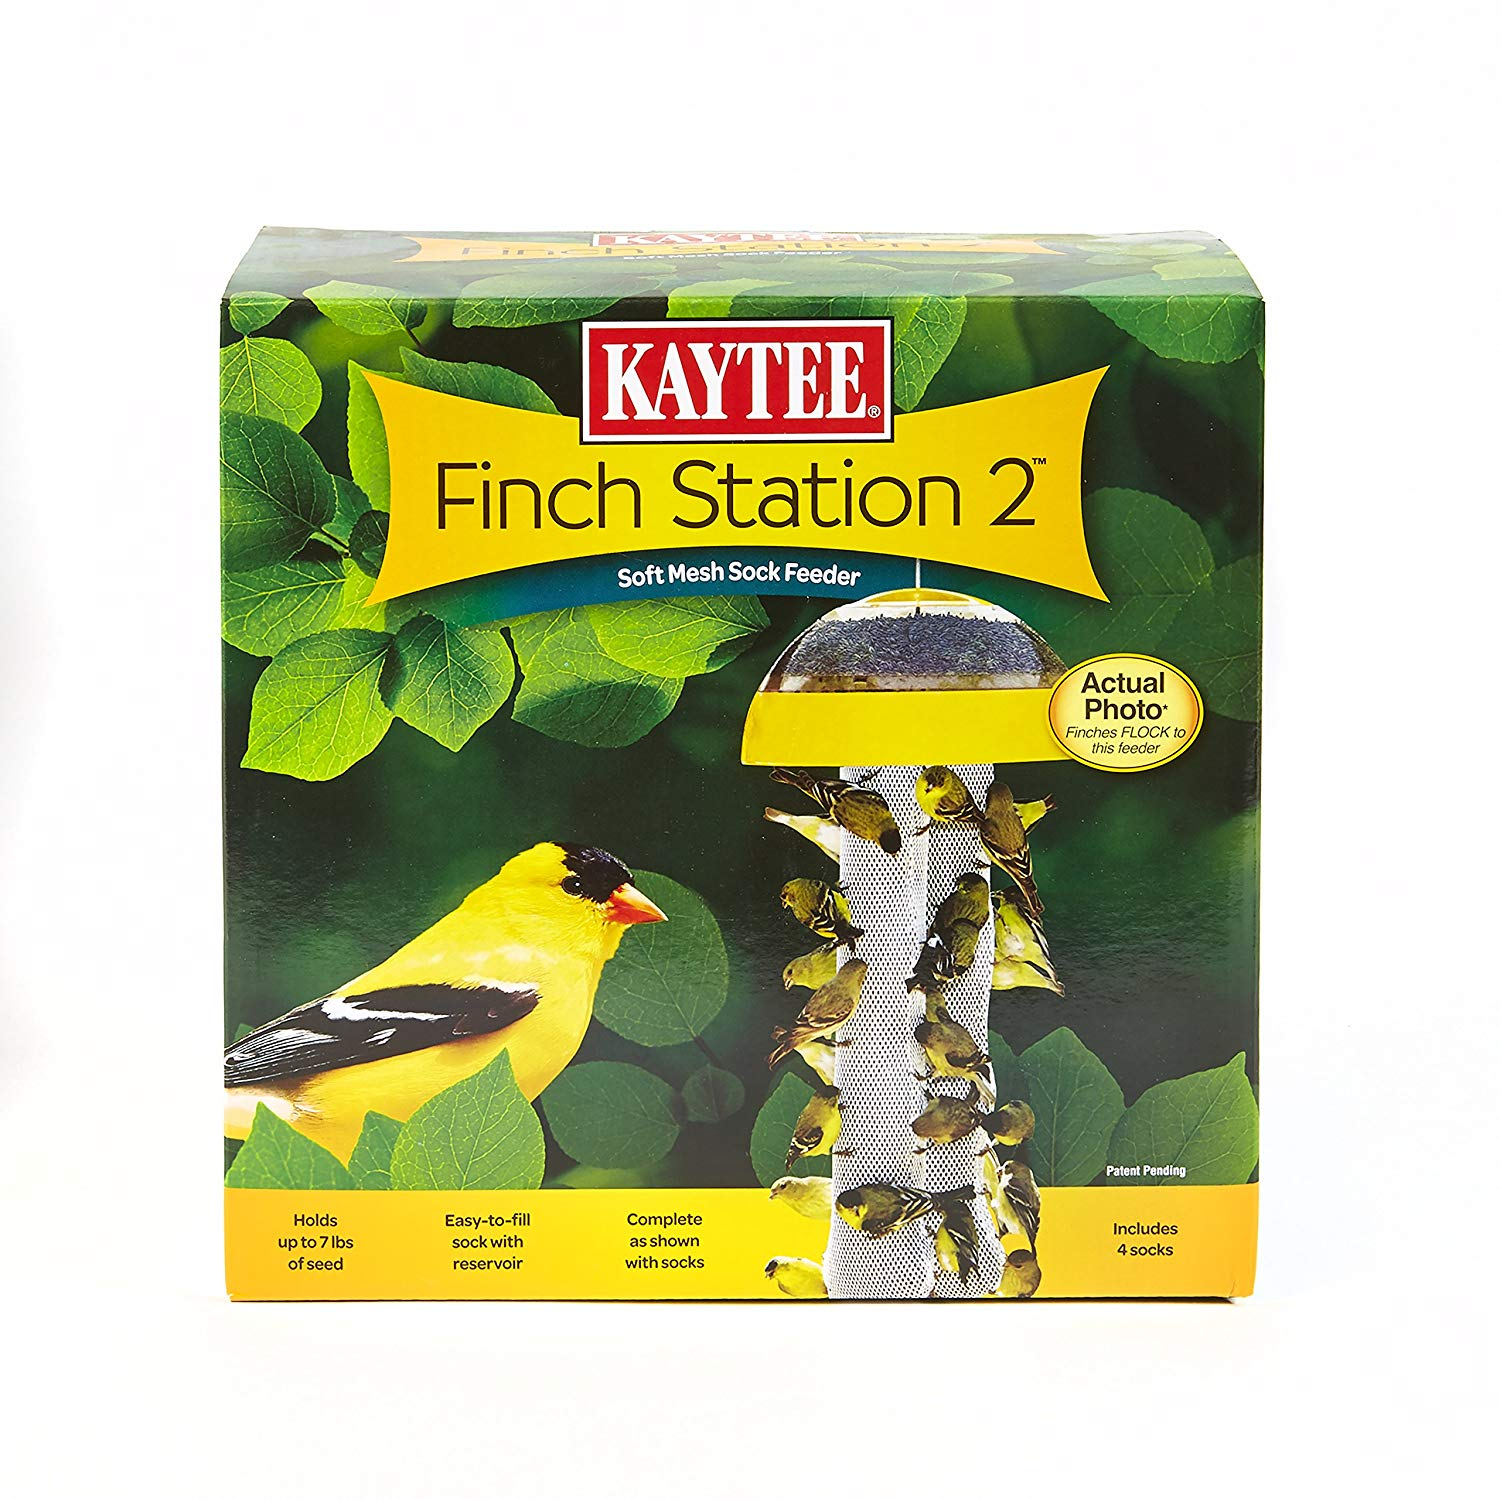 Finch Feeder, Kaycee Finch Station 2 A soft, pliable mesh feeder that holds more than 7 pounds of food By Kaytee